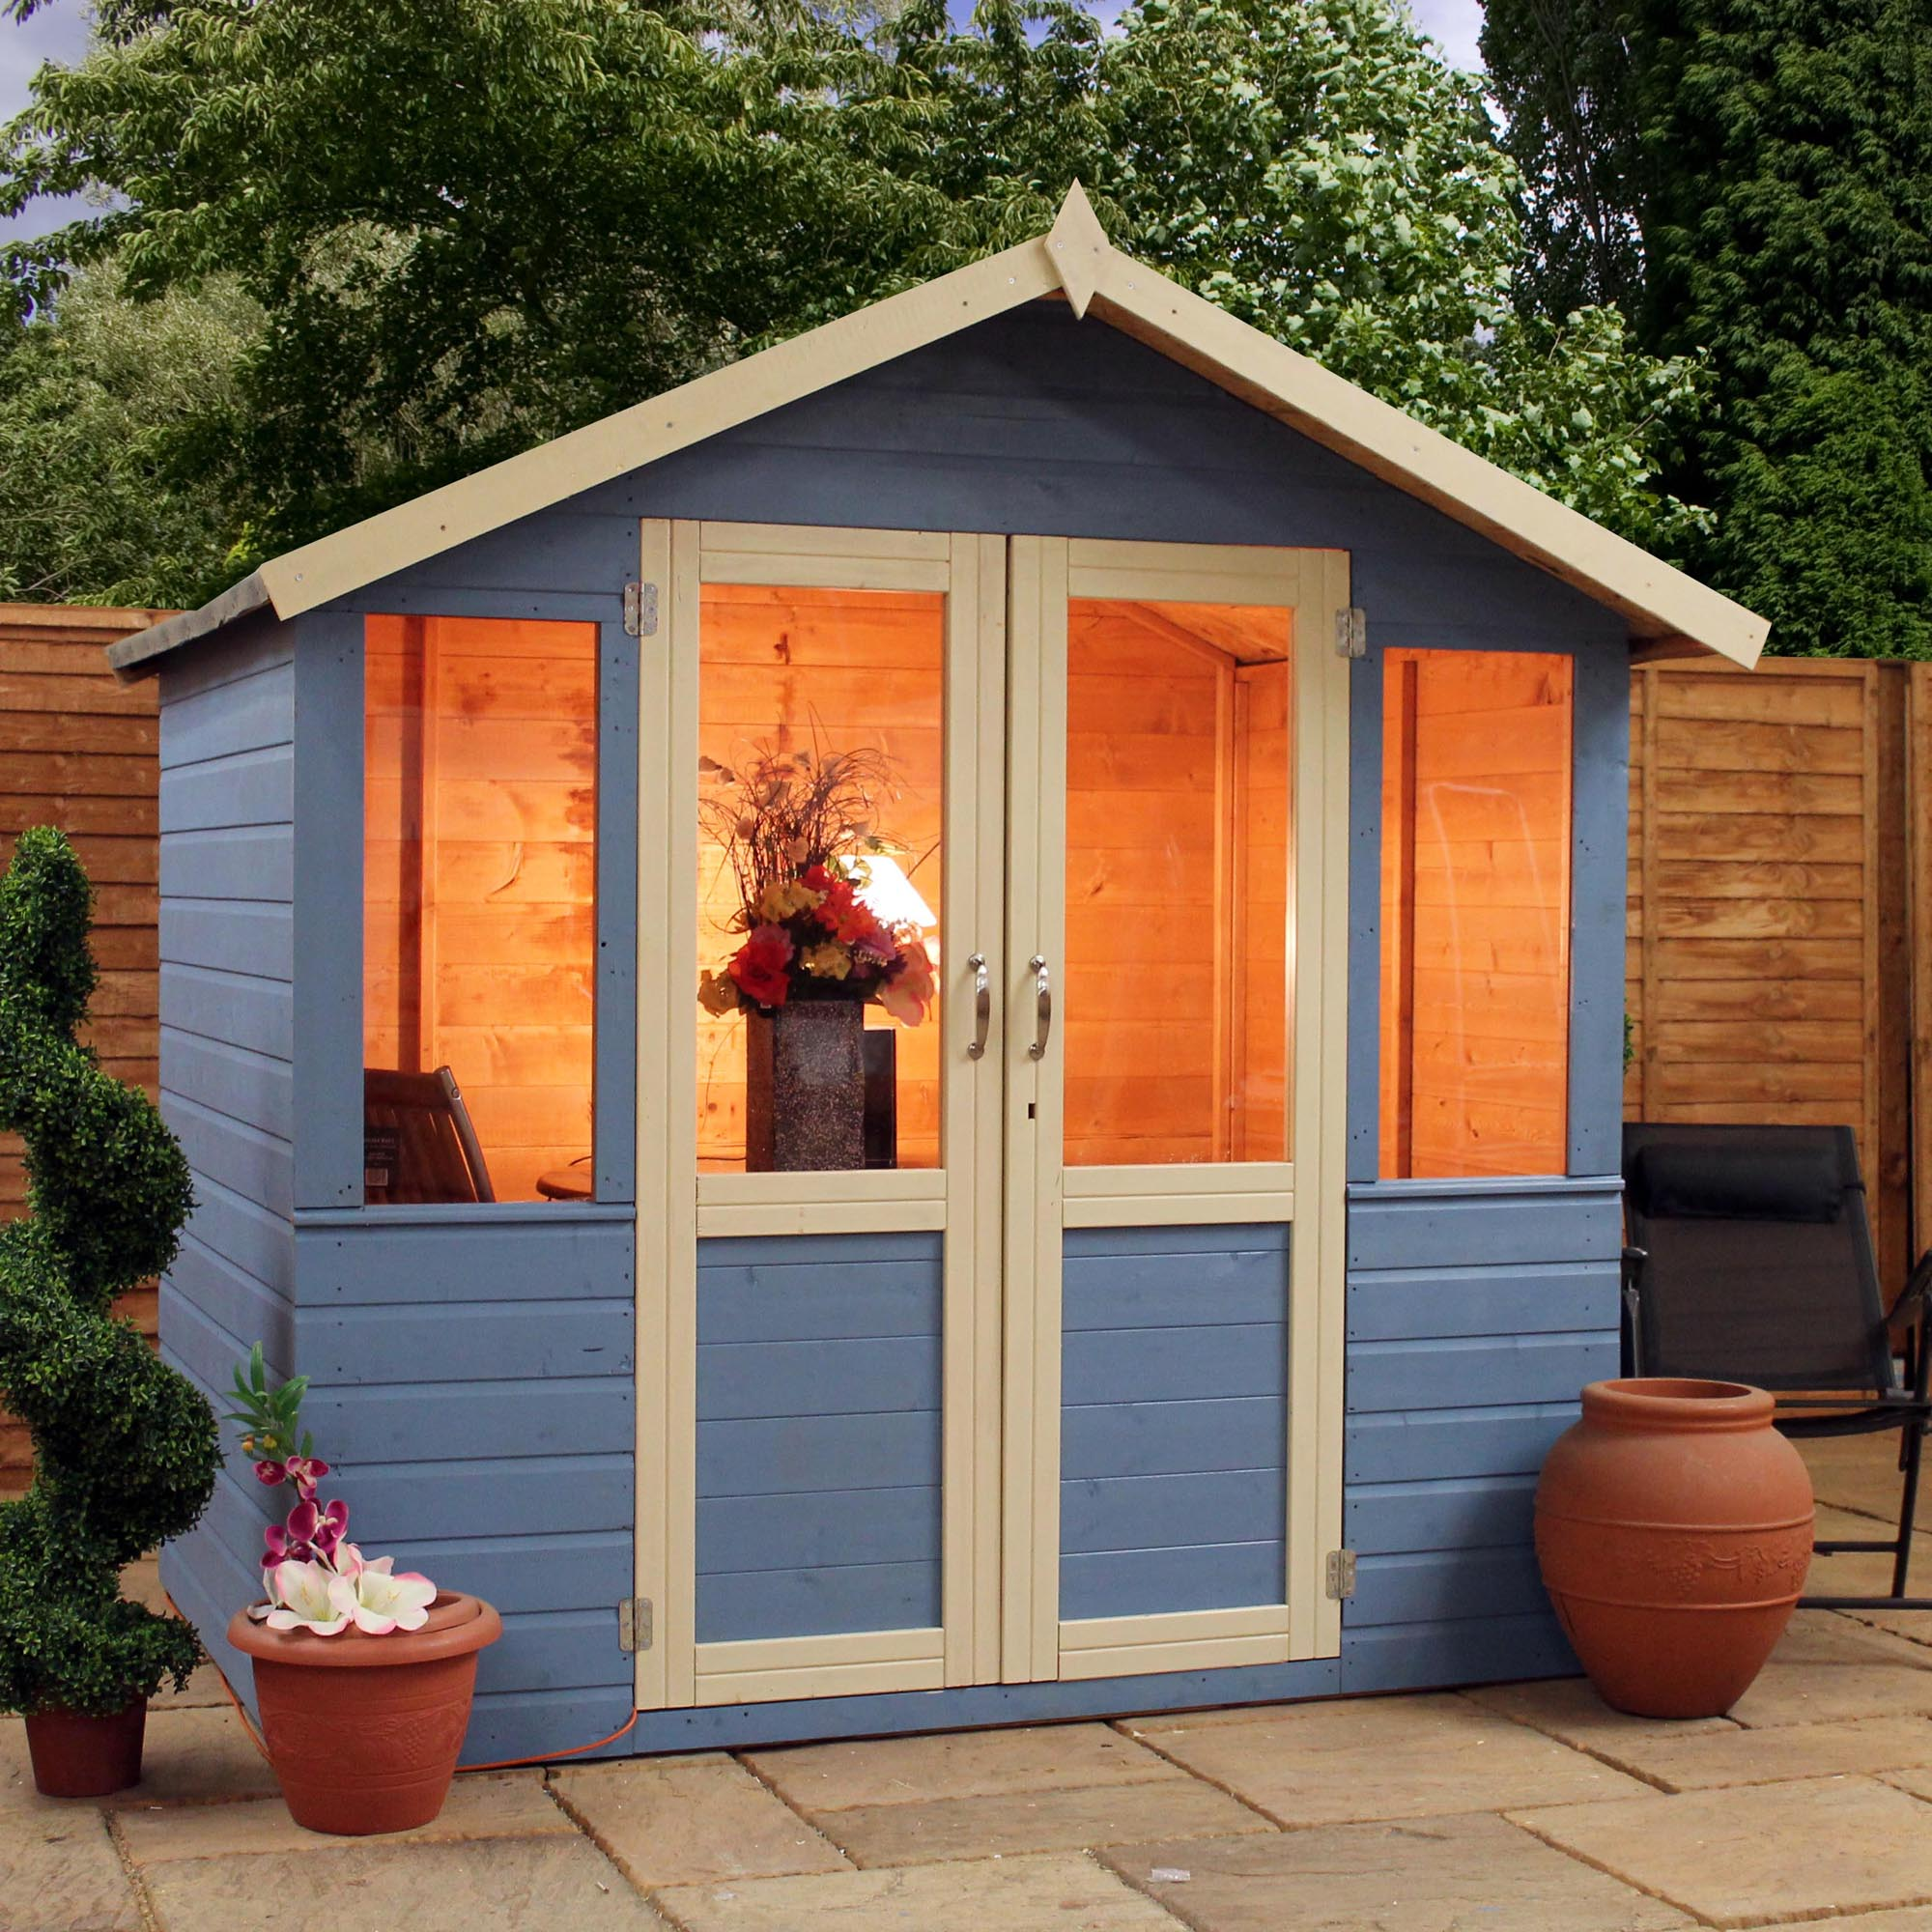 Woodcraft uk manufacturers of garden timber buildings for Garden designs with summer houses